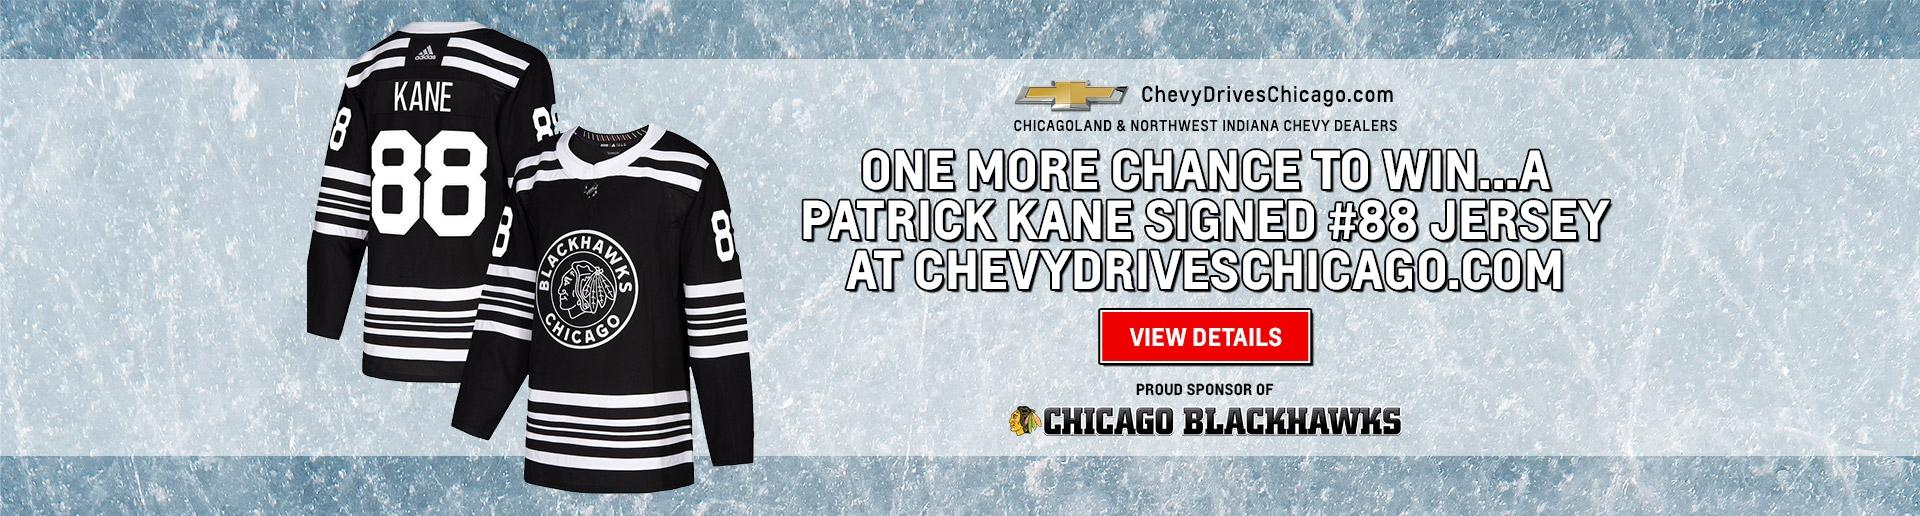 Enter to Win a Signed Patrick Kane #88 Jersey | Chevy Drives Chicago